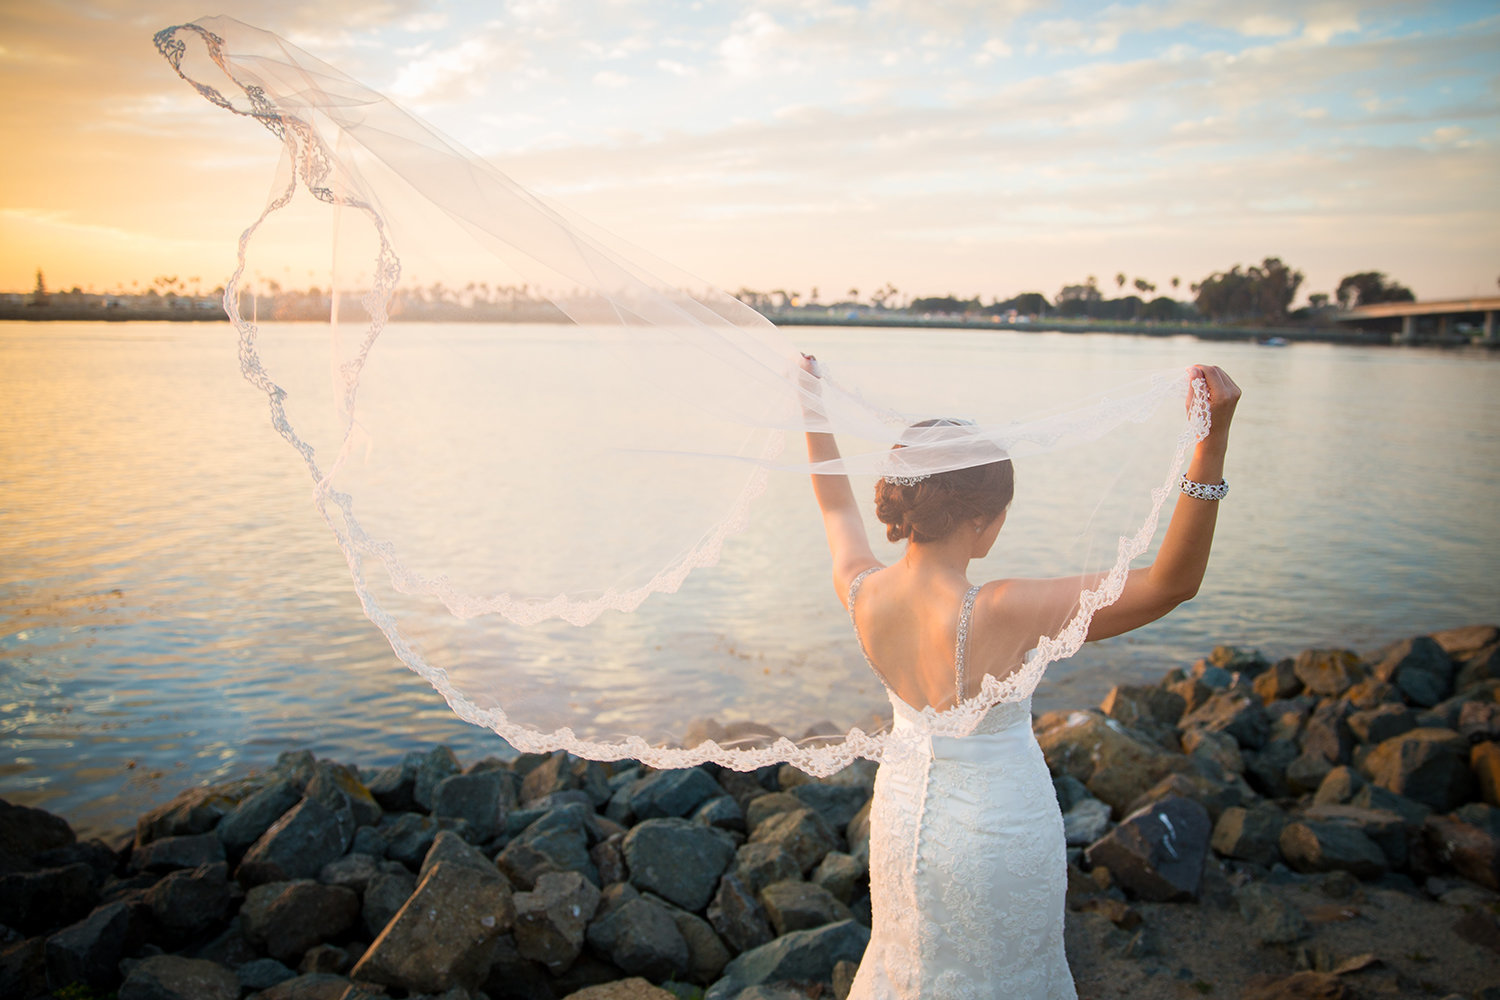 Bride's veil blowing in the wind with a beautiful Misison Bay sunset.